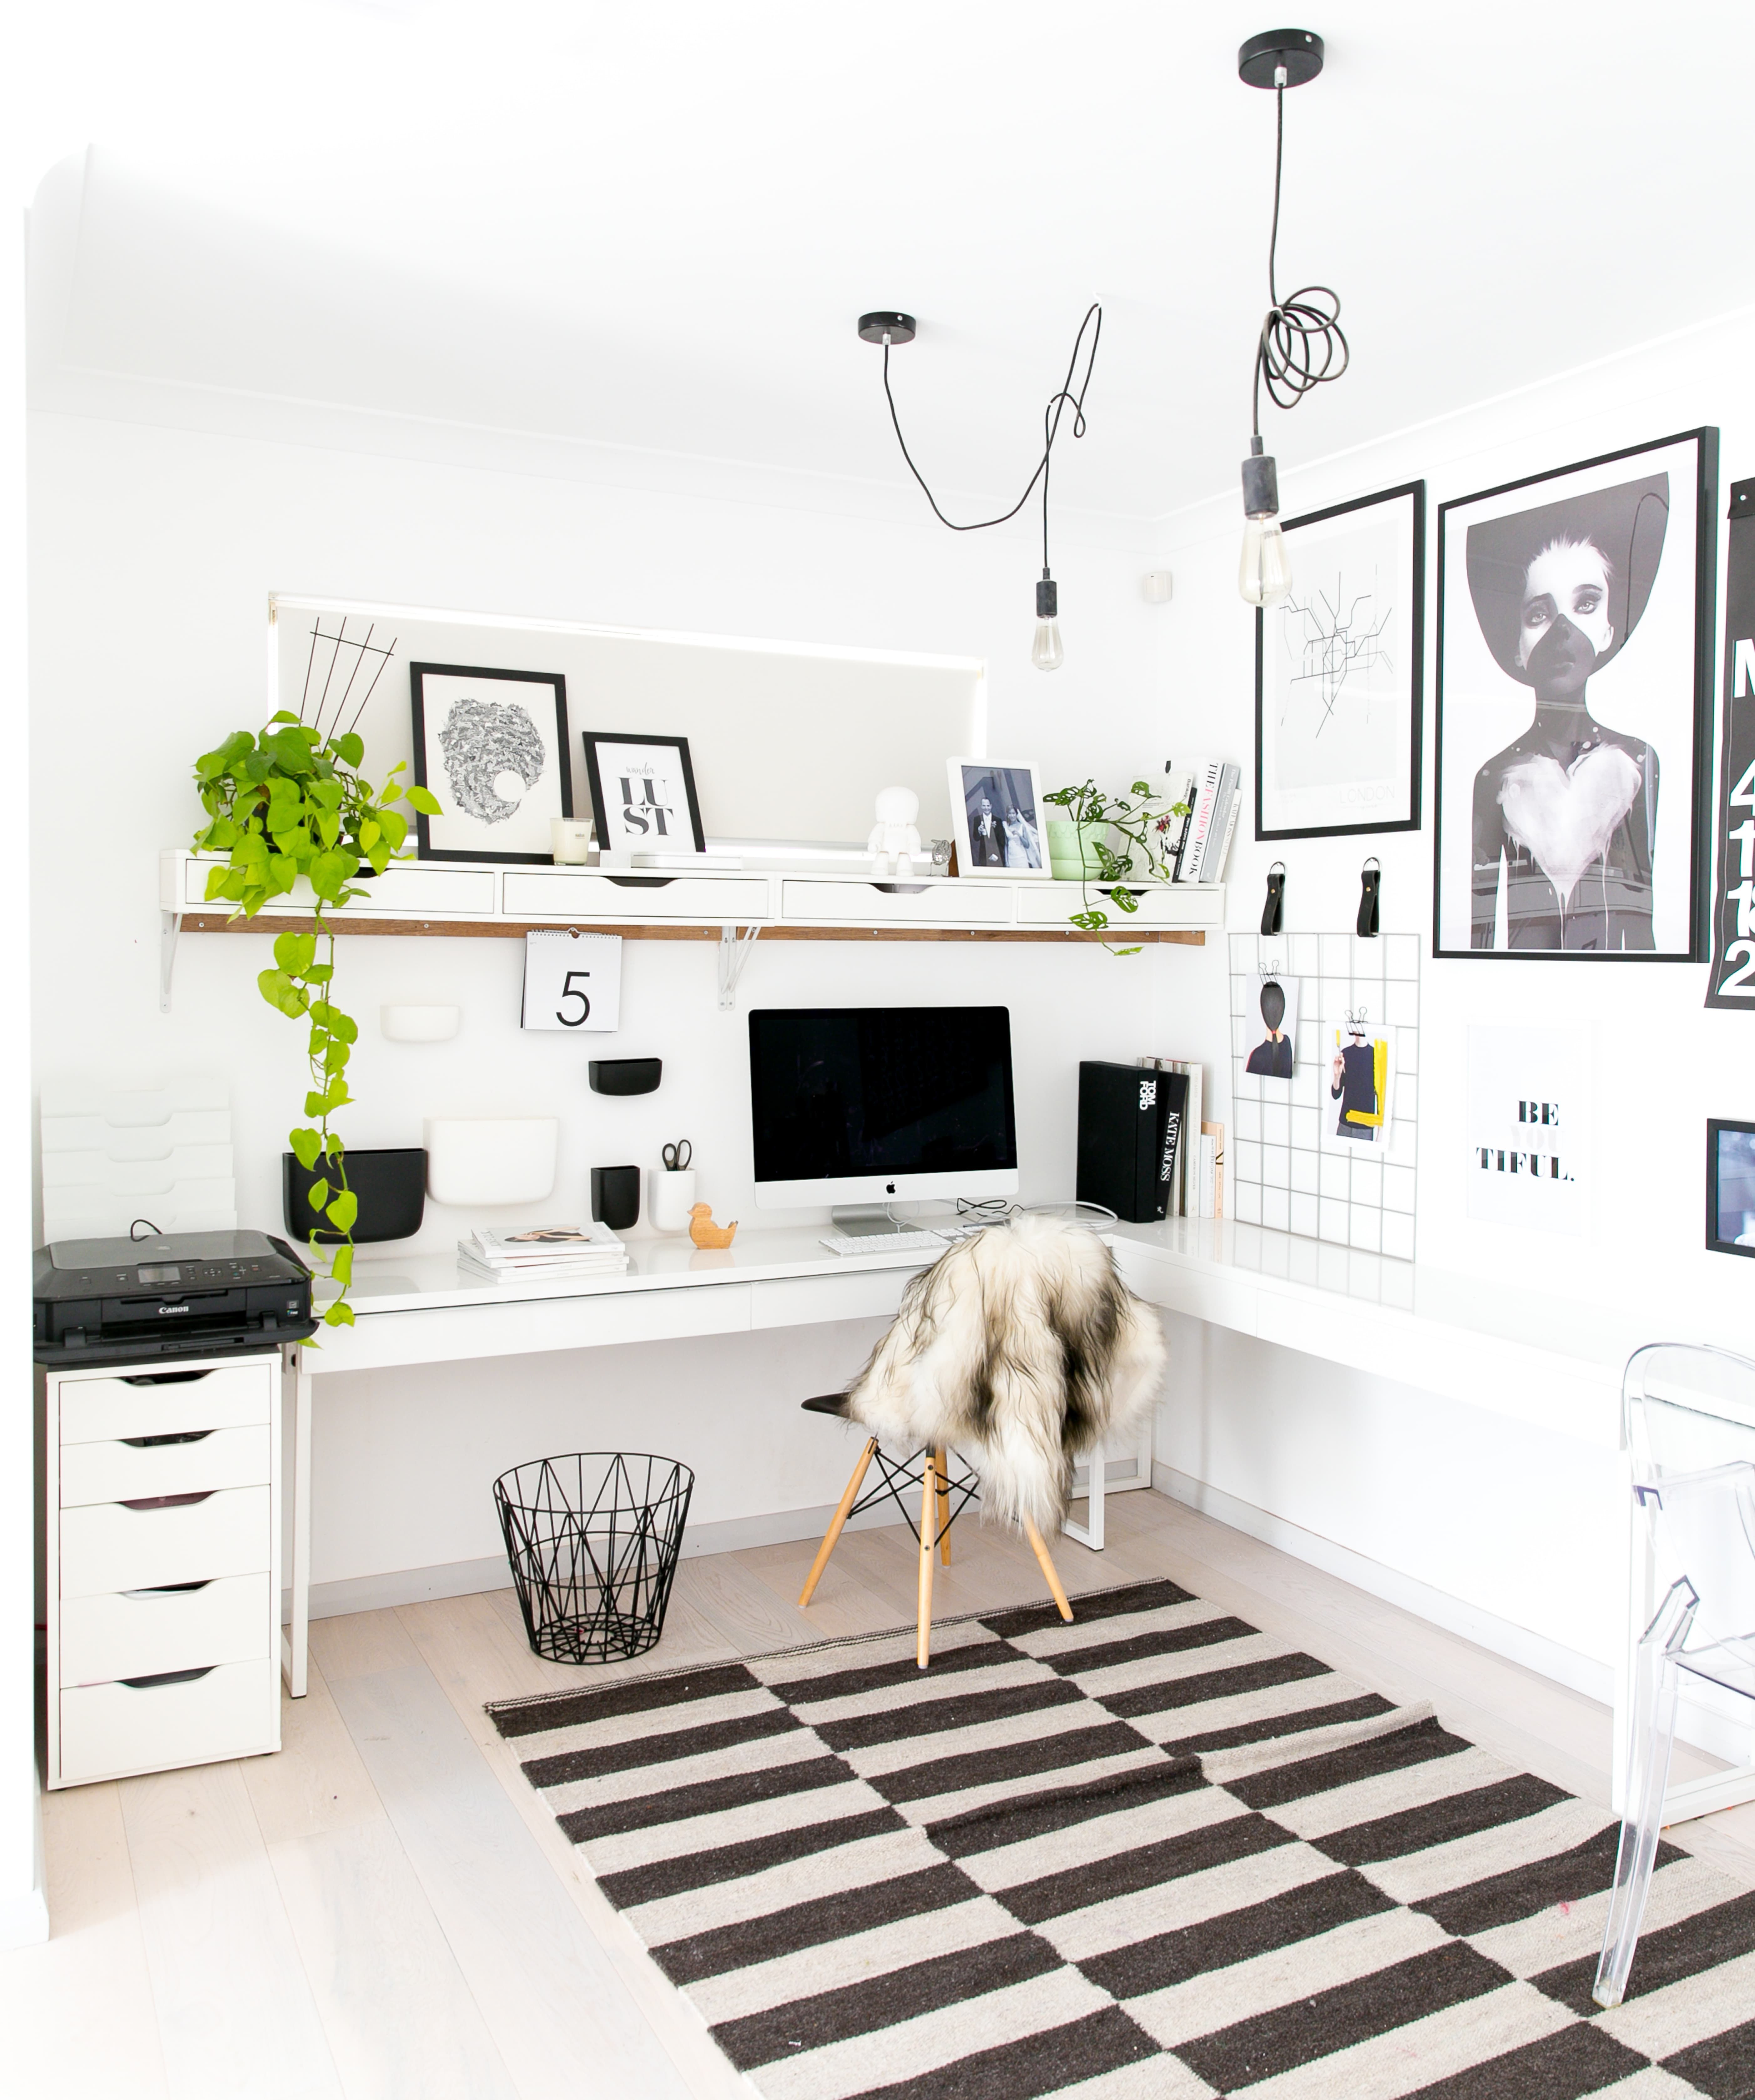 Up Your Energy: Simple Workspace Feng Shui Principles To